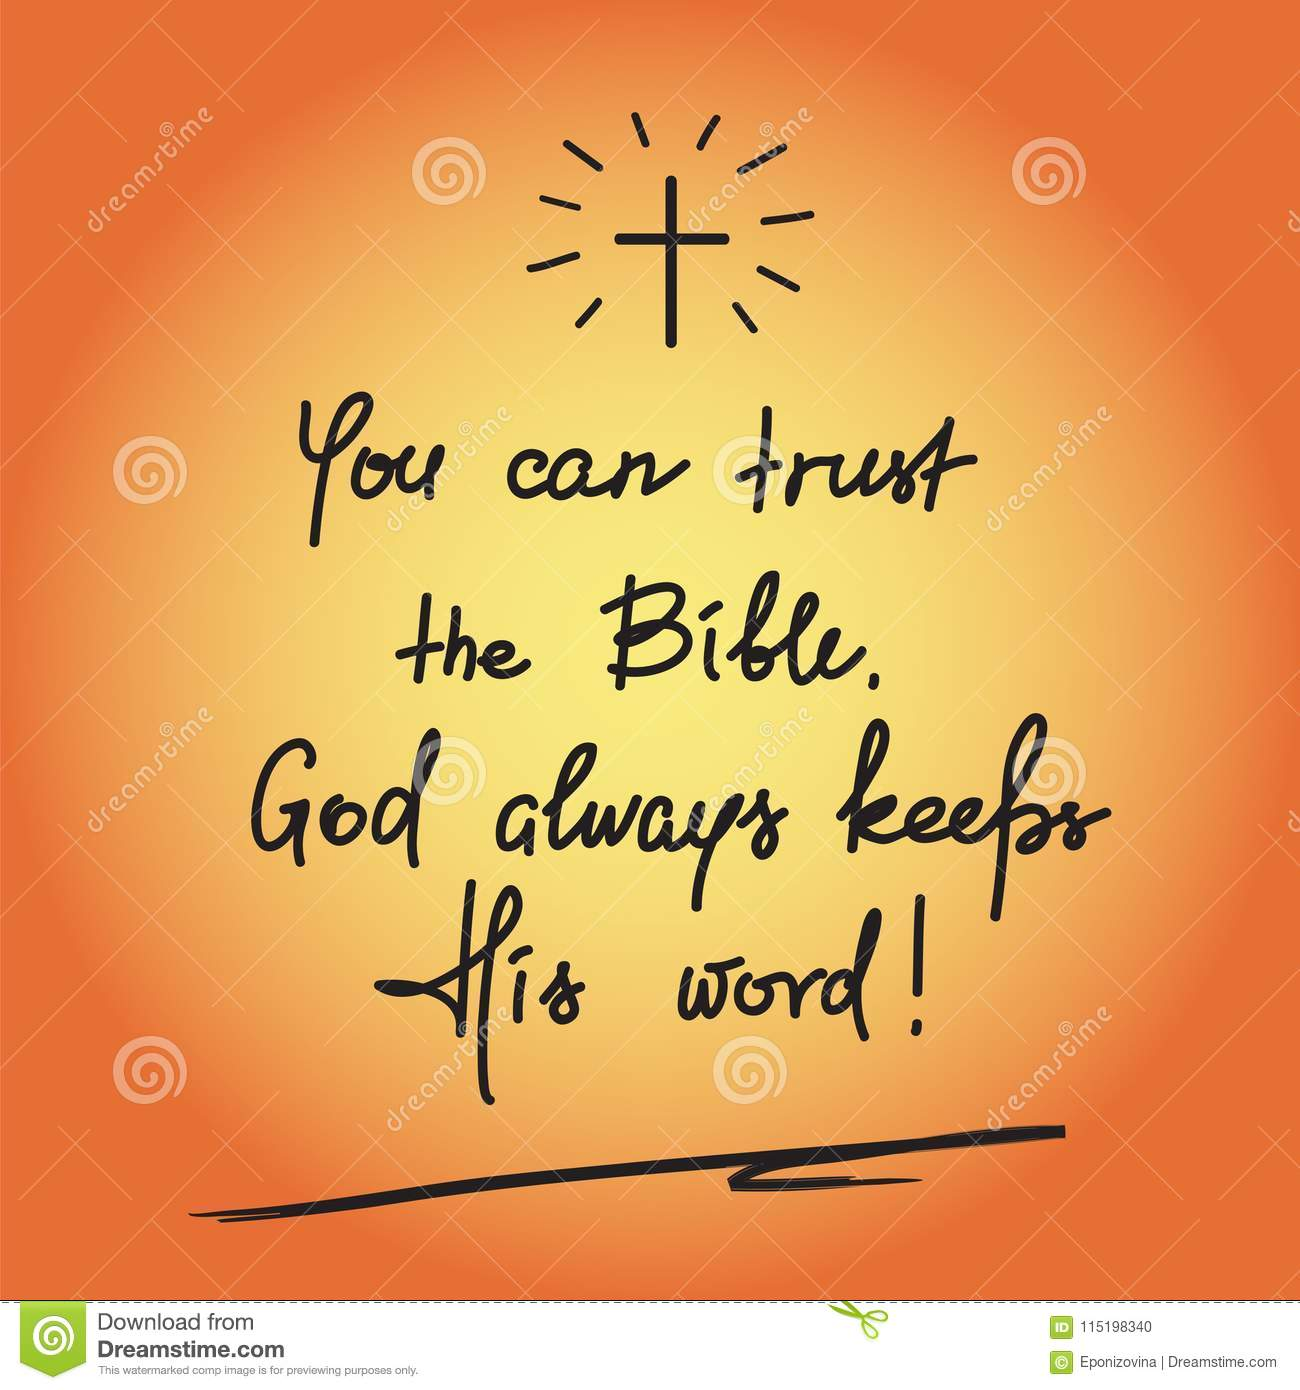 You Can Trust The Bible, God Always Keeps His Word - Motivational